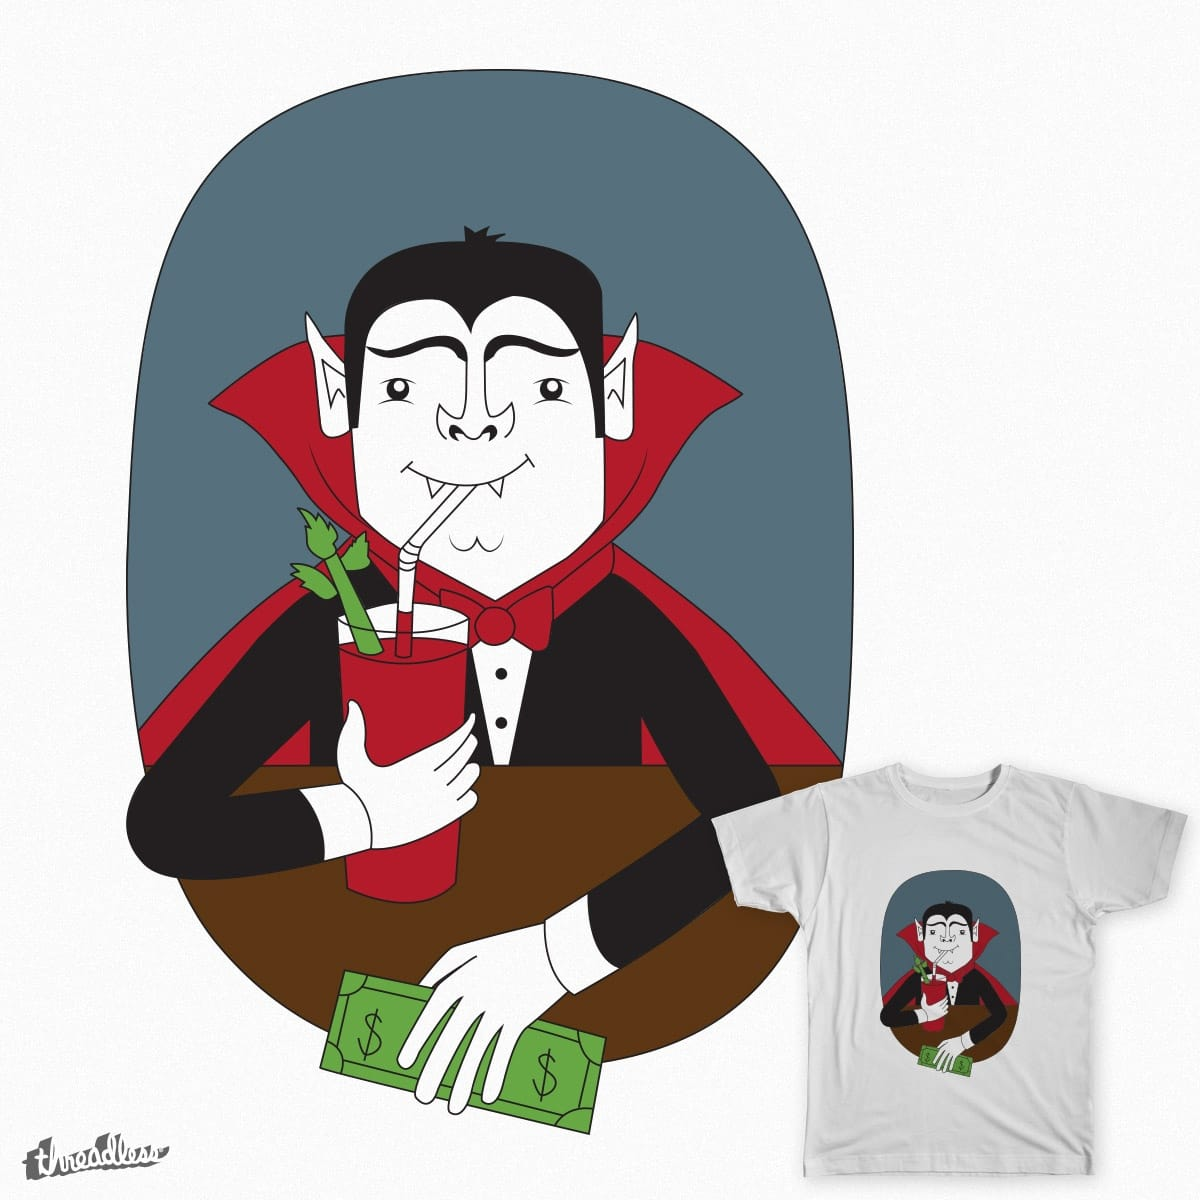 Count Drunkula by taylorgordon9412 on Threadless